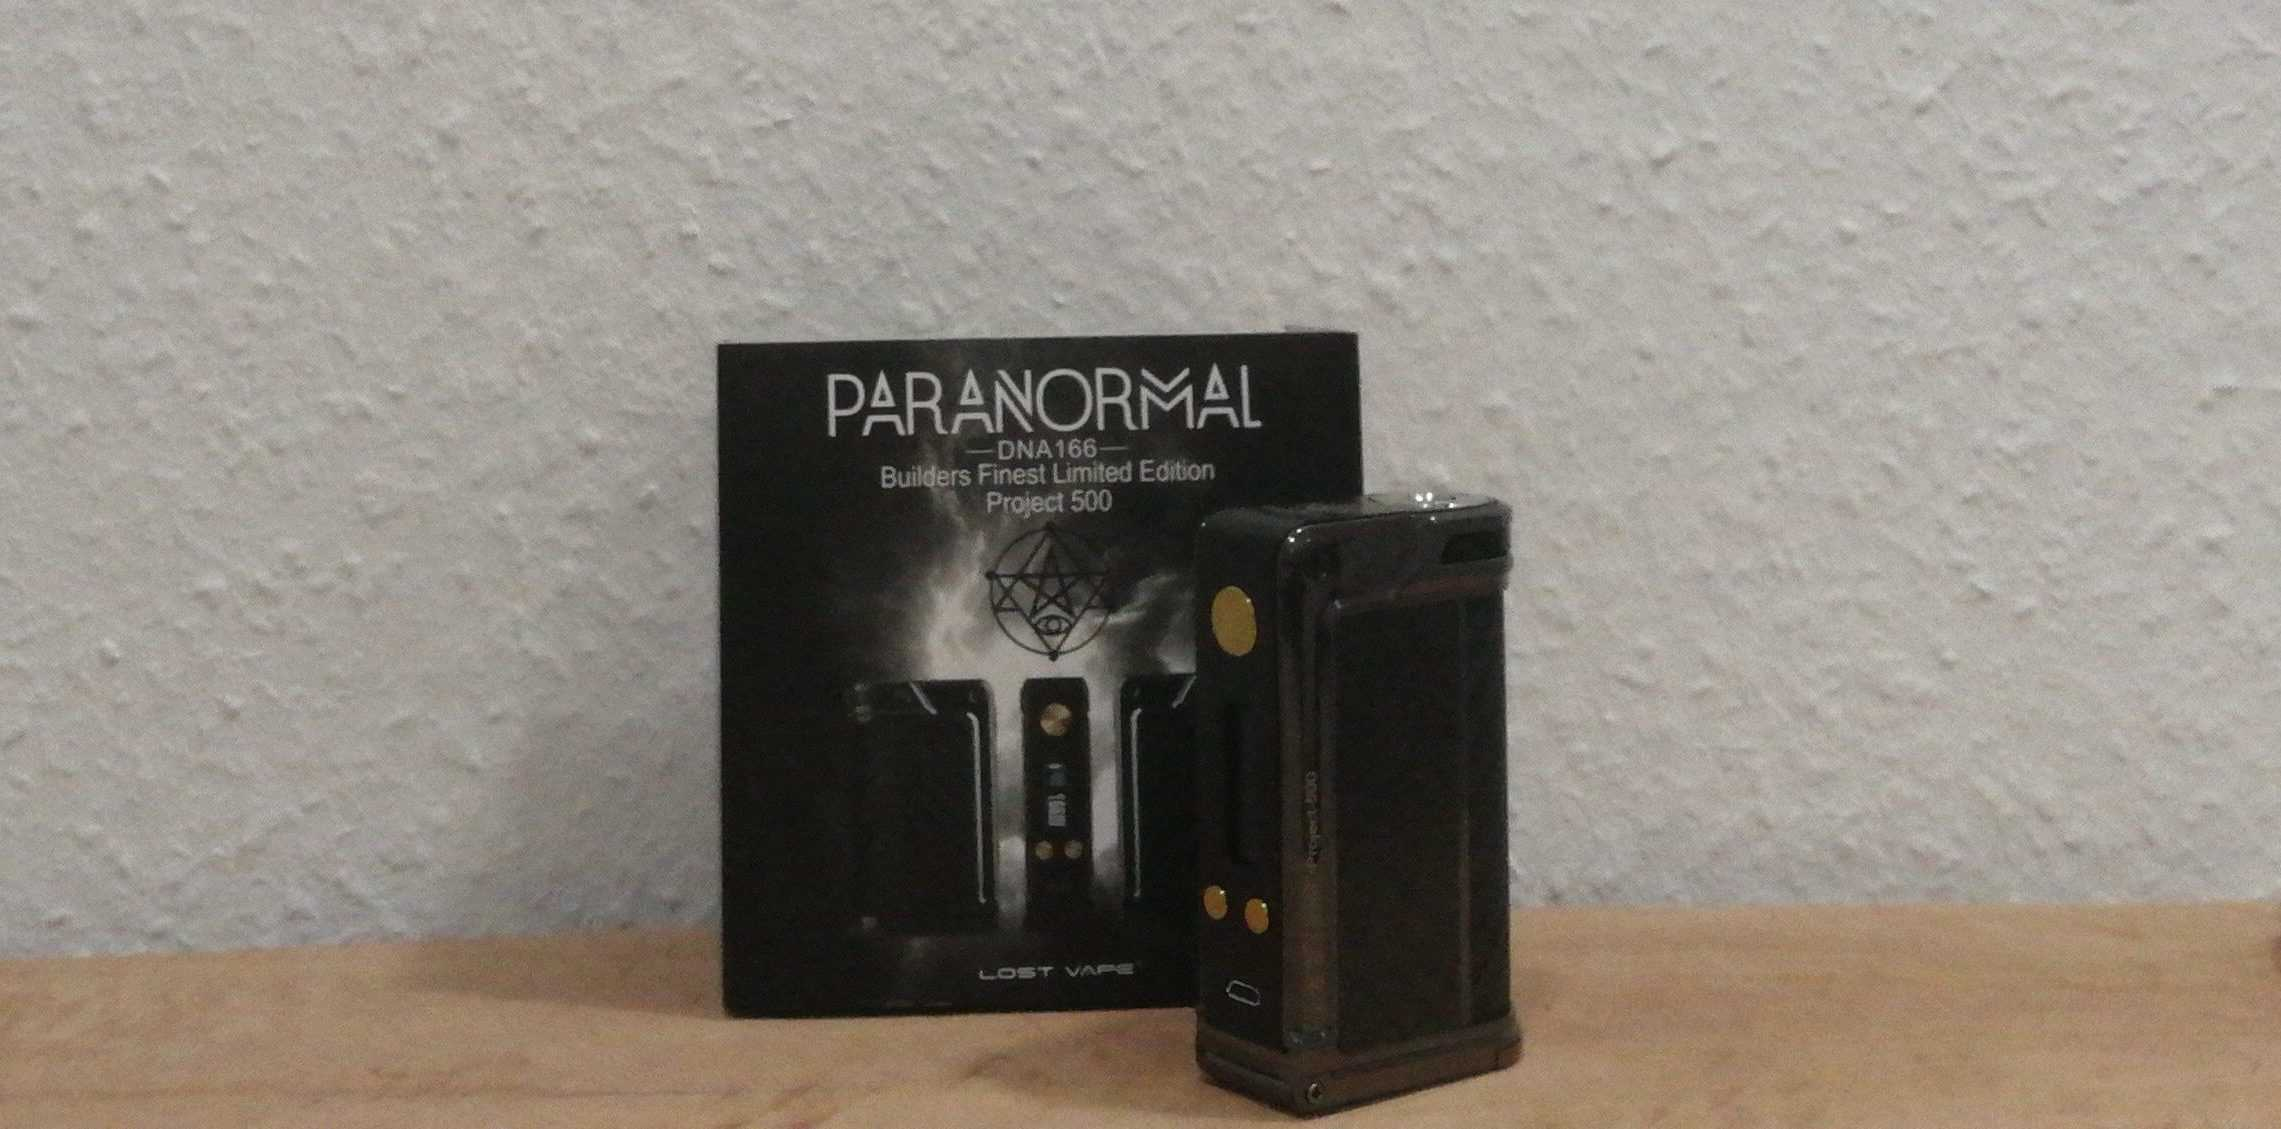 Lost Vape Paranormal DNA 166 Builders Finest Limited Edition ~ Project 500!